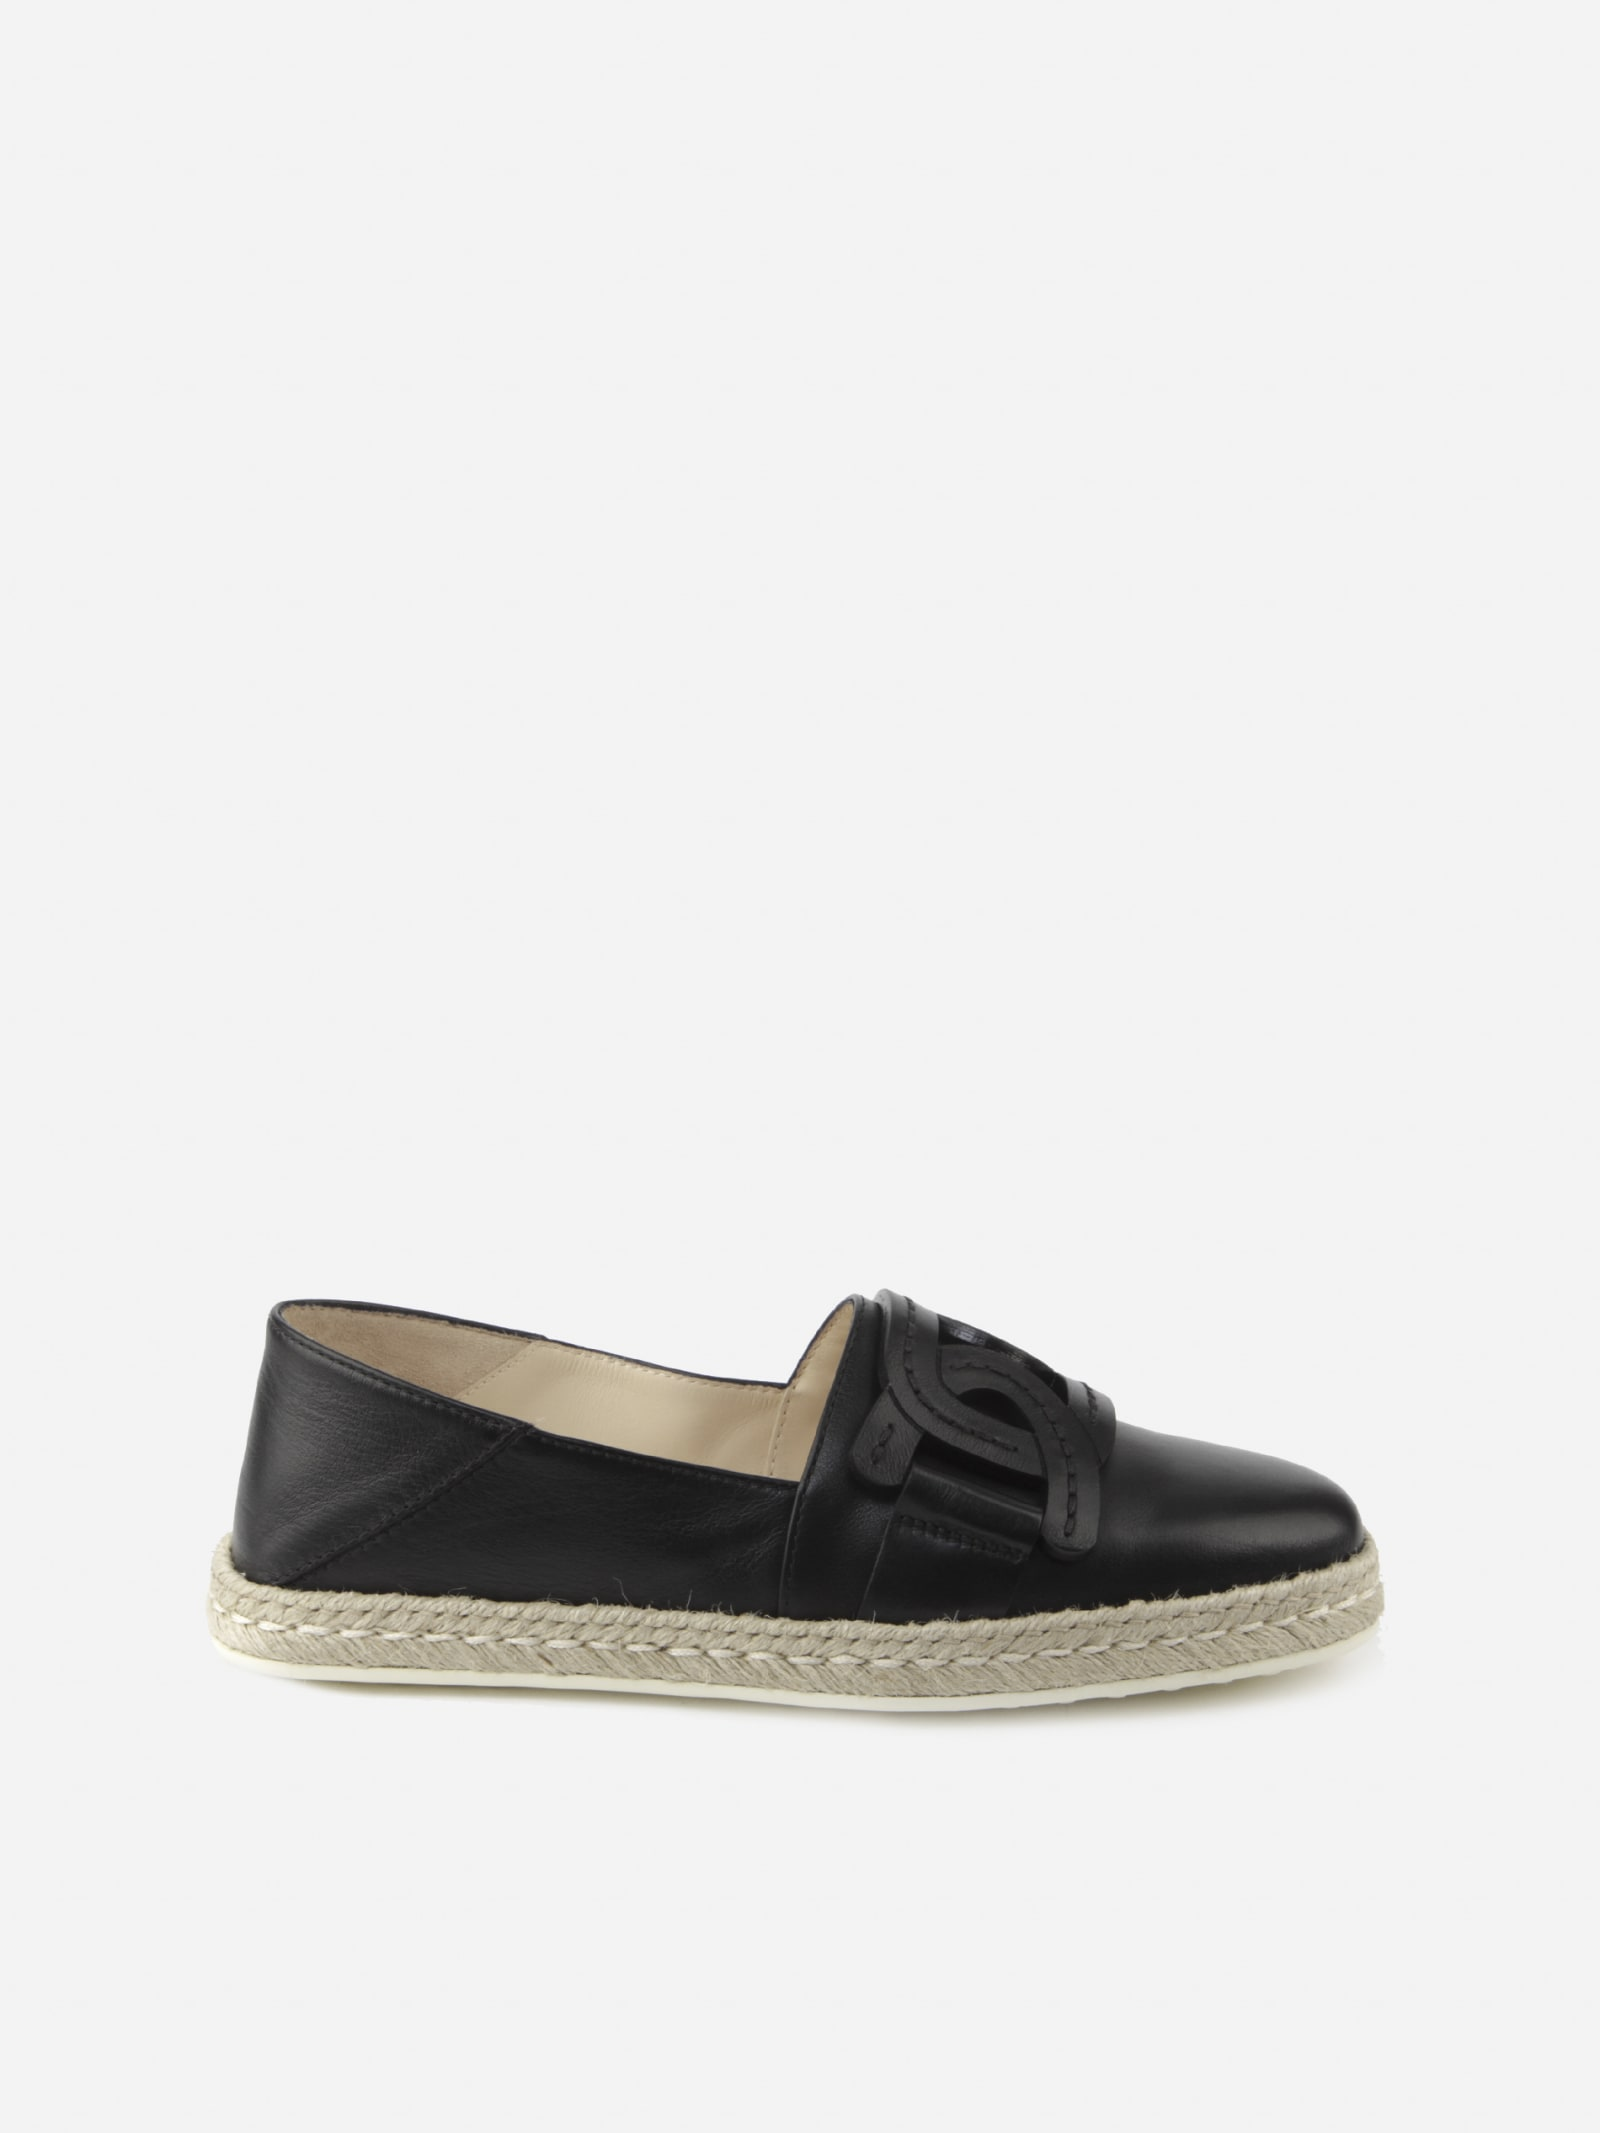 Tods Slip On With Chain Detail In Tone-on-tone Leather